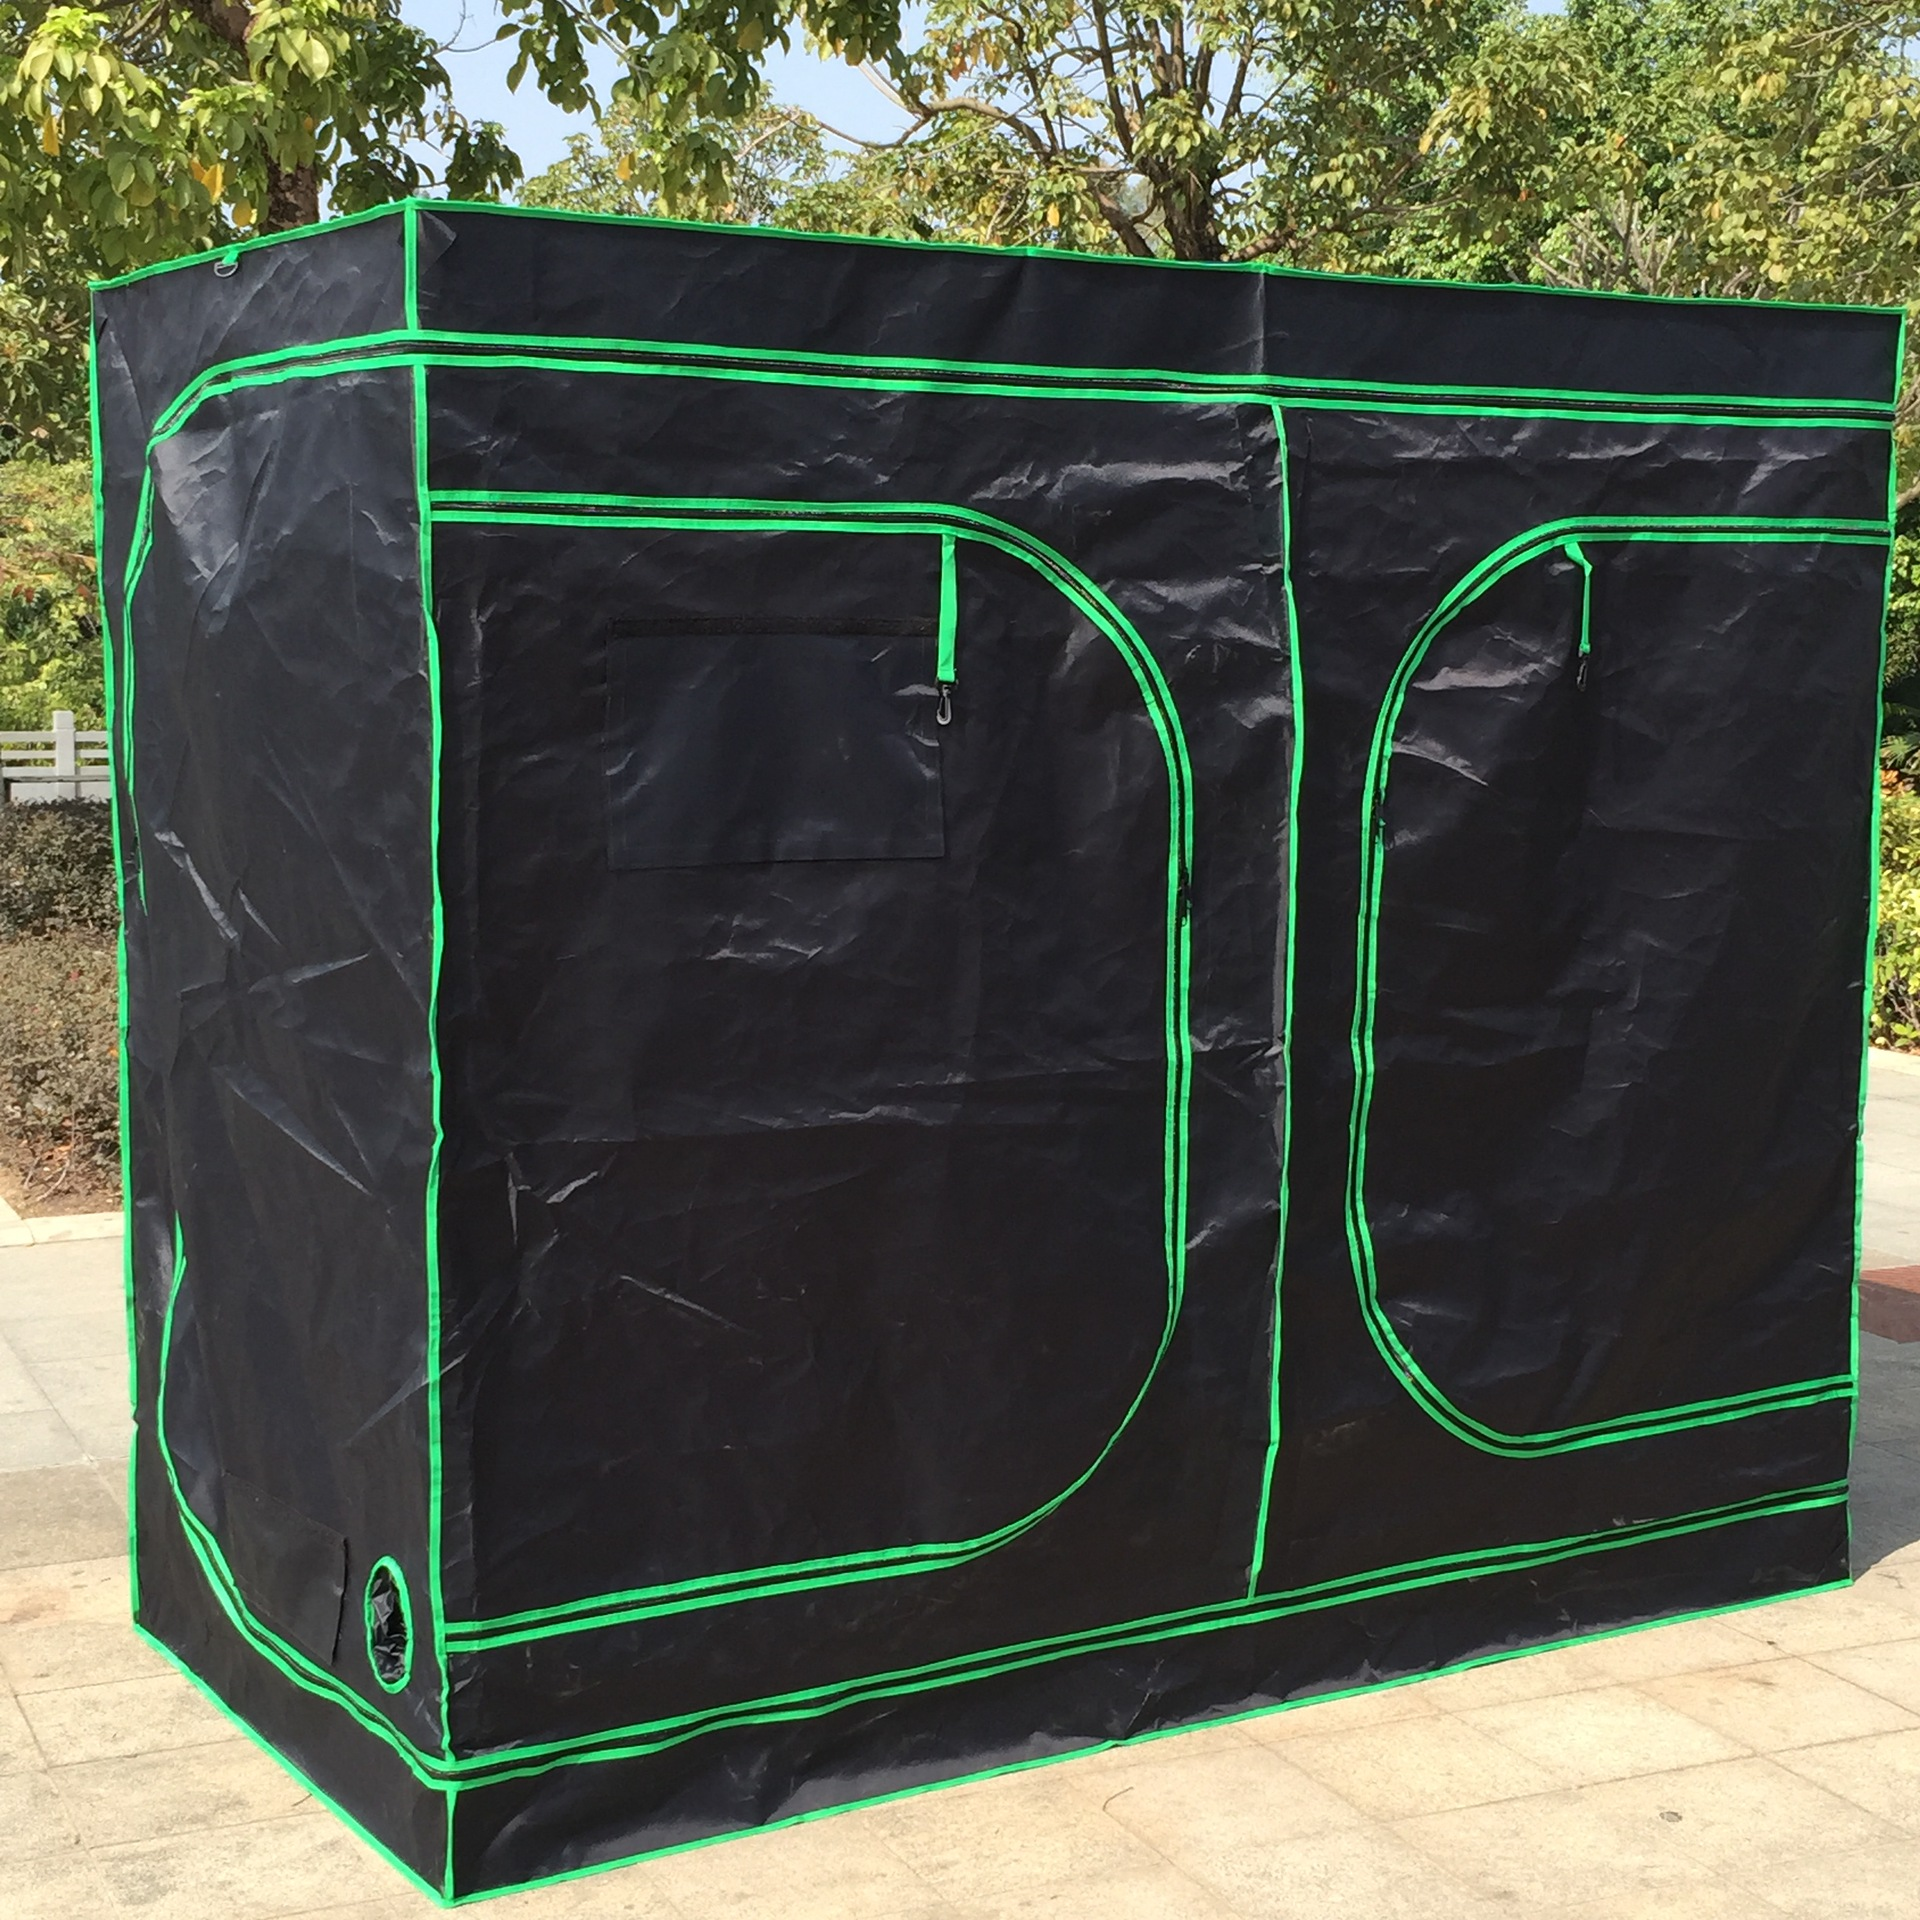 Plant Grow Tent, Reflective Mylar Non Toxic Garden Greenhouses For Planting System Grow Room Plants Tents